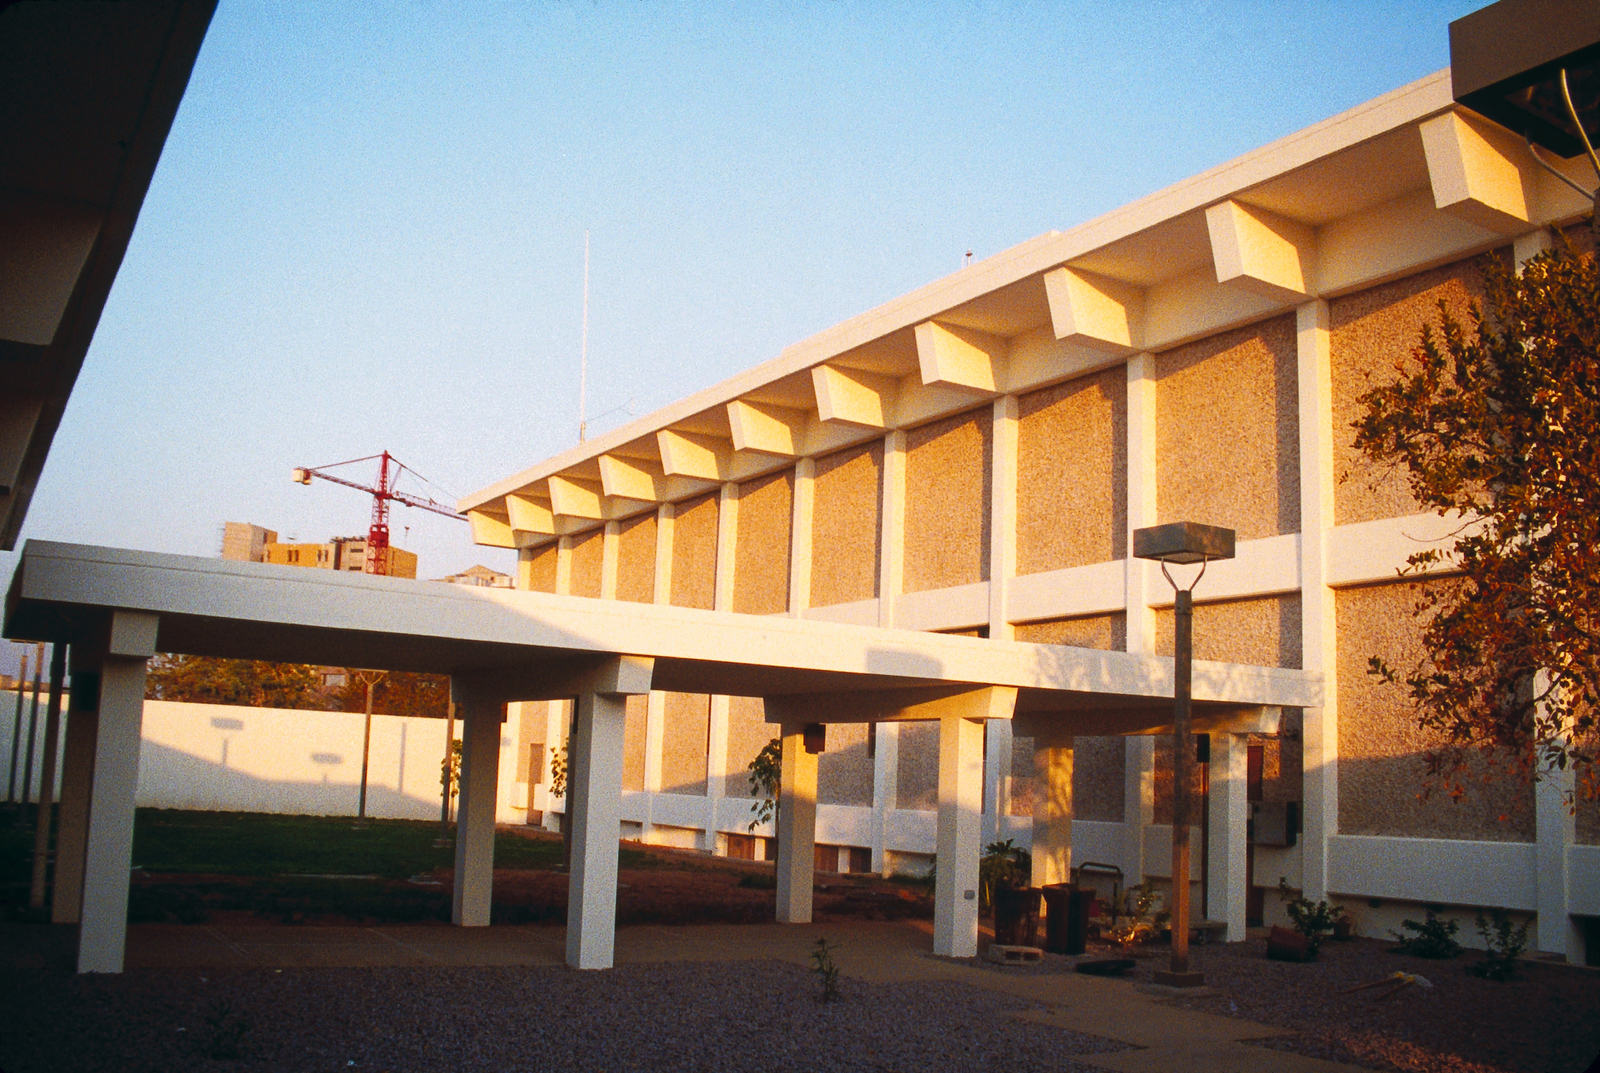 Gabarone - Chancery Office Building - 1989